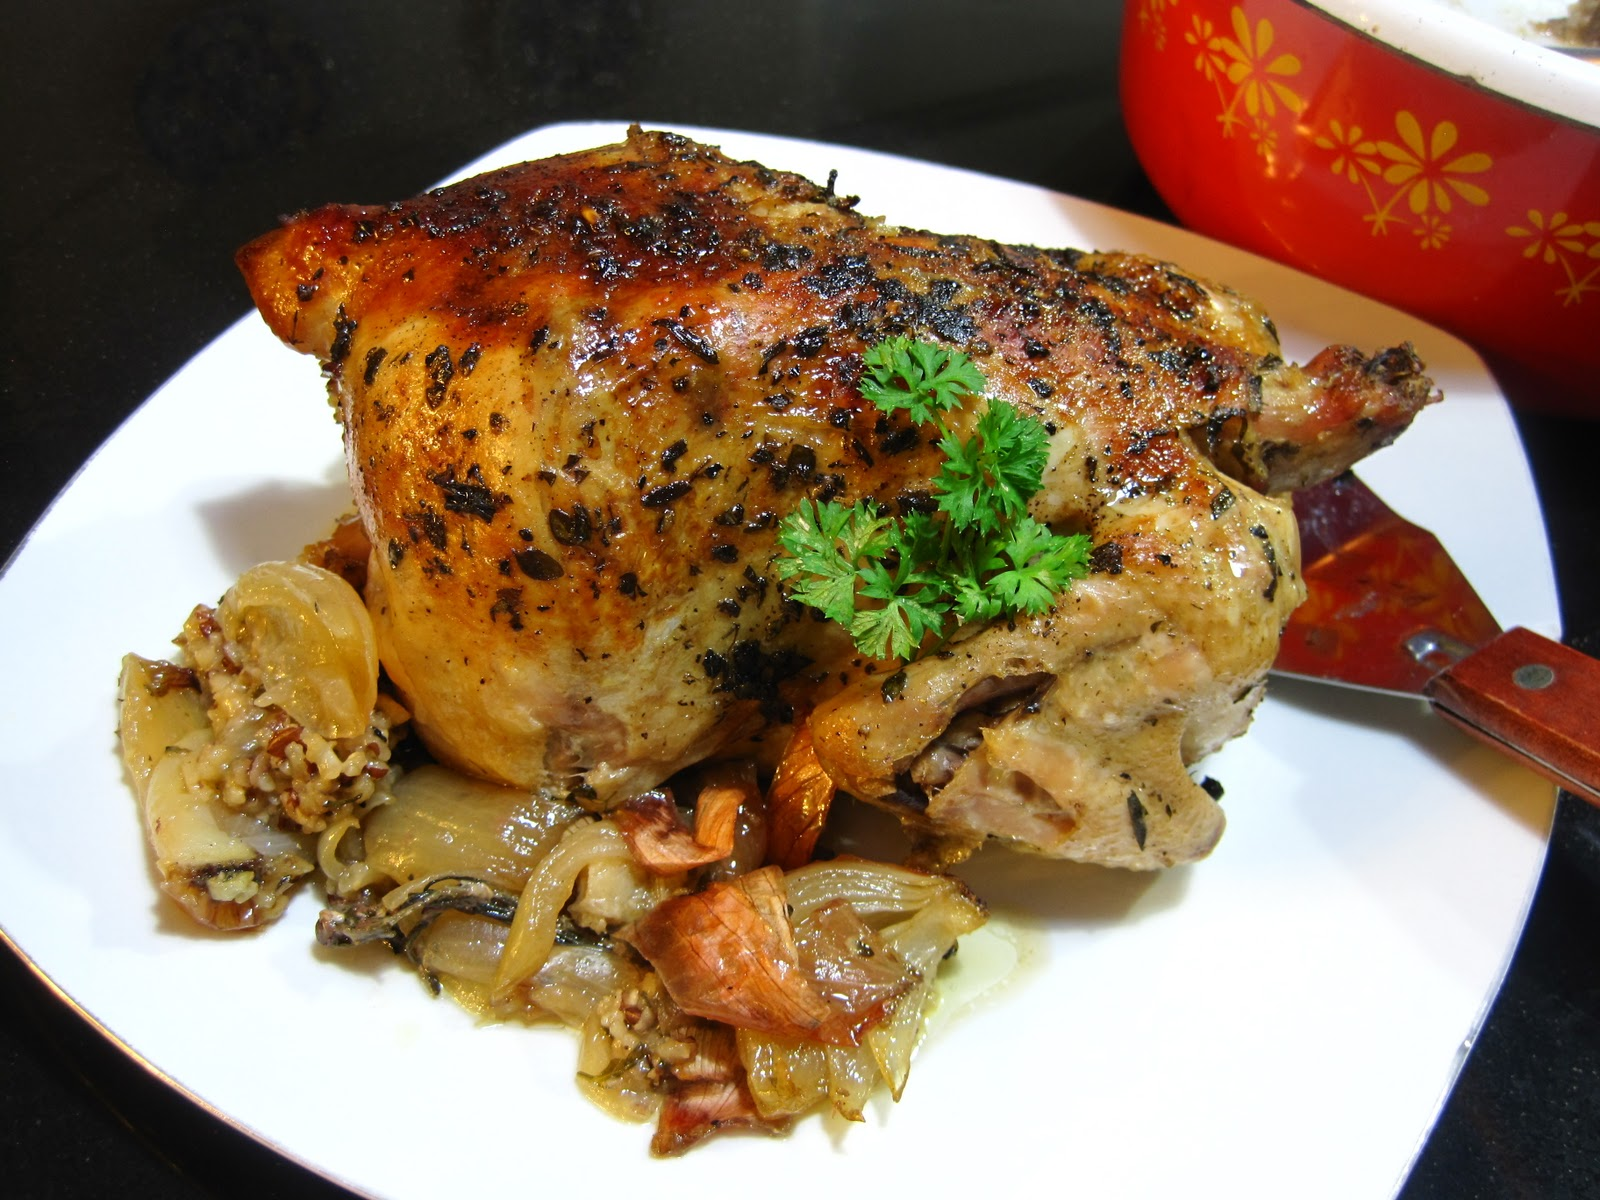 The Blue Cottage: Herb Roasted Chicken Stuffed with Red and Brown Rice